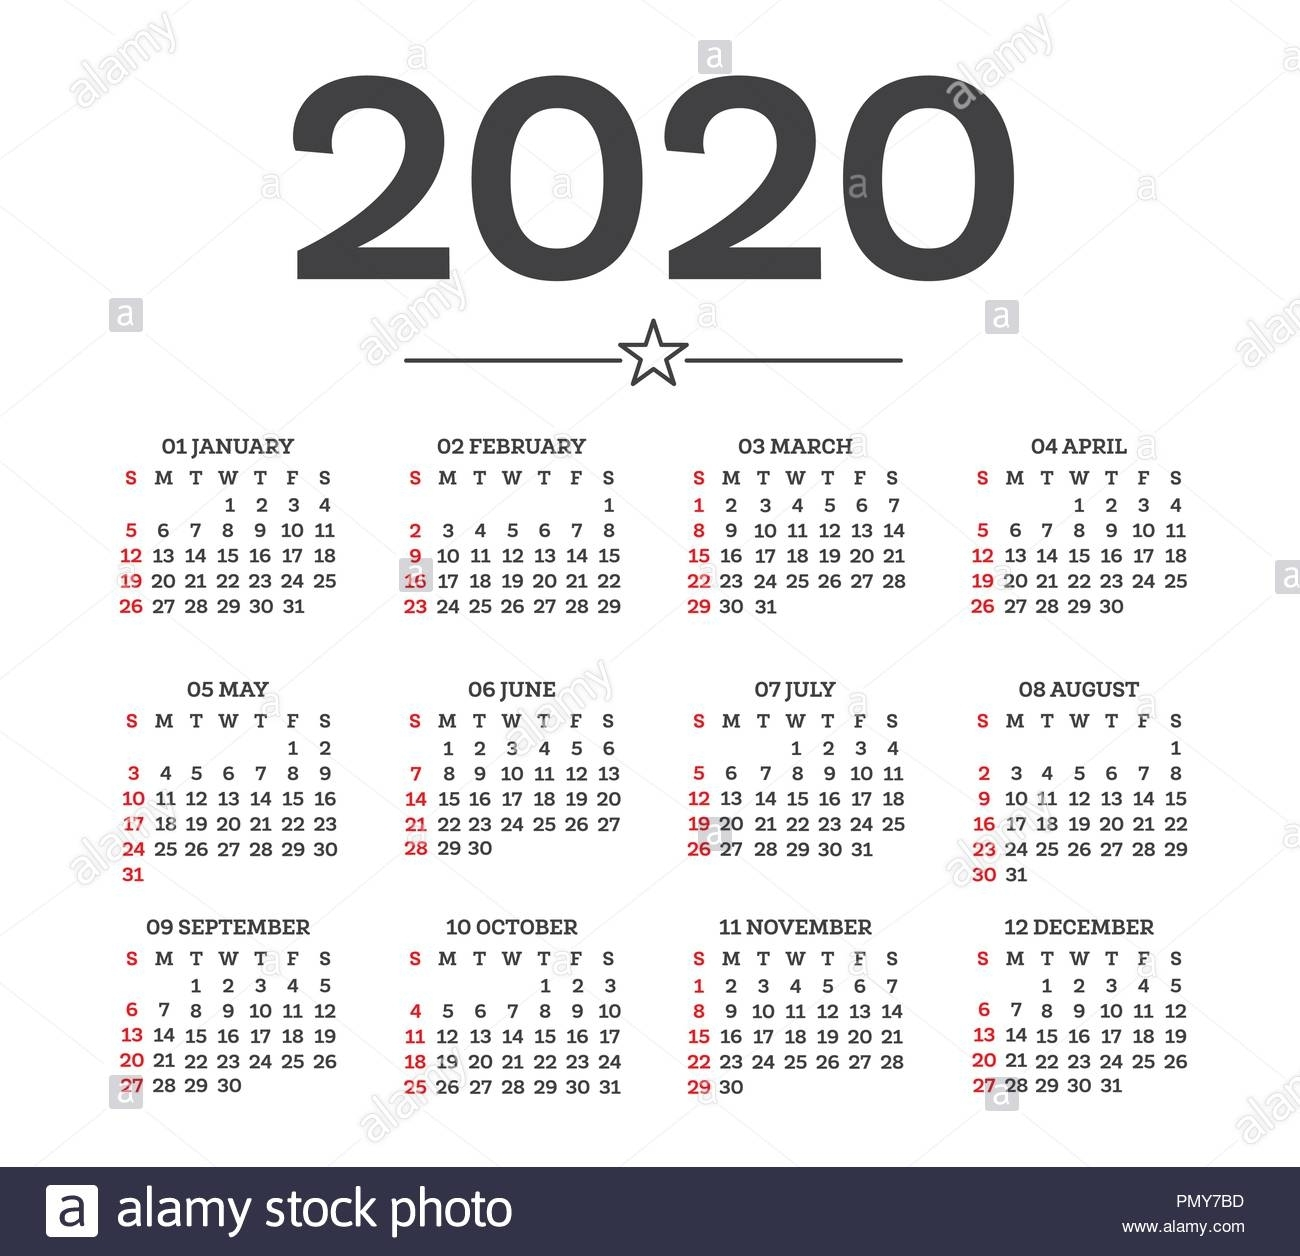 Calendar 2020 Isolated On White Background. Week Starts From